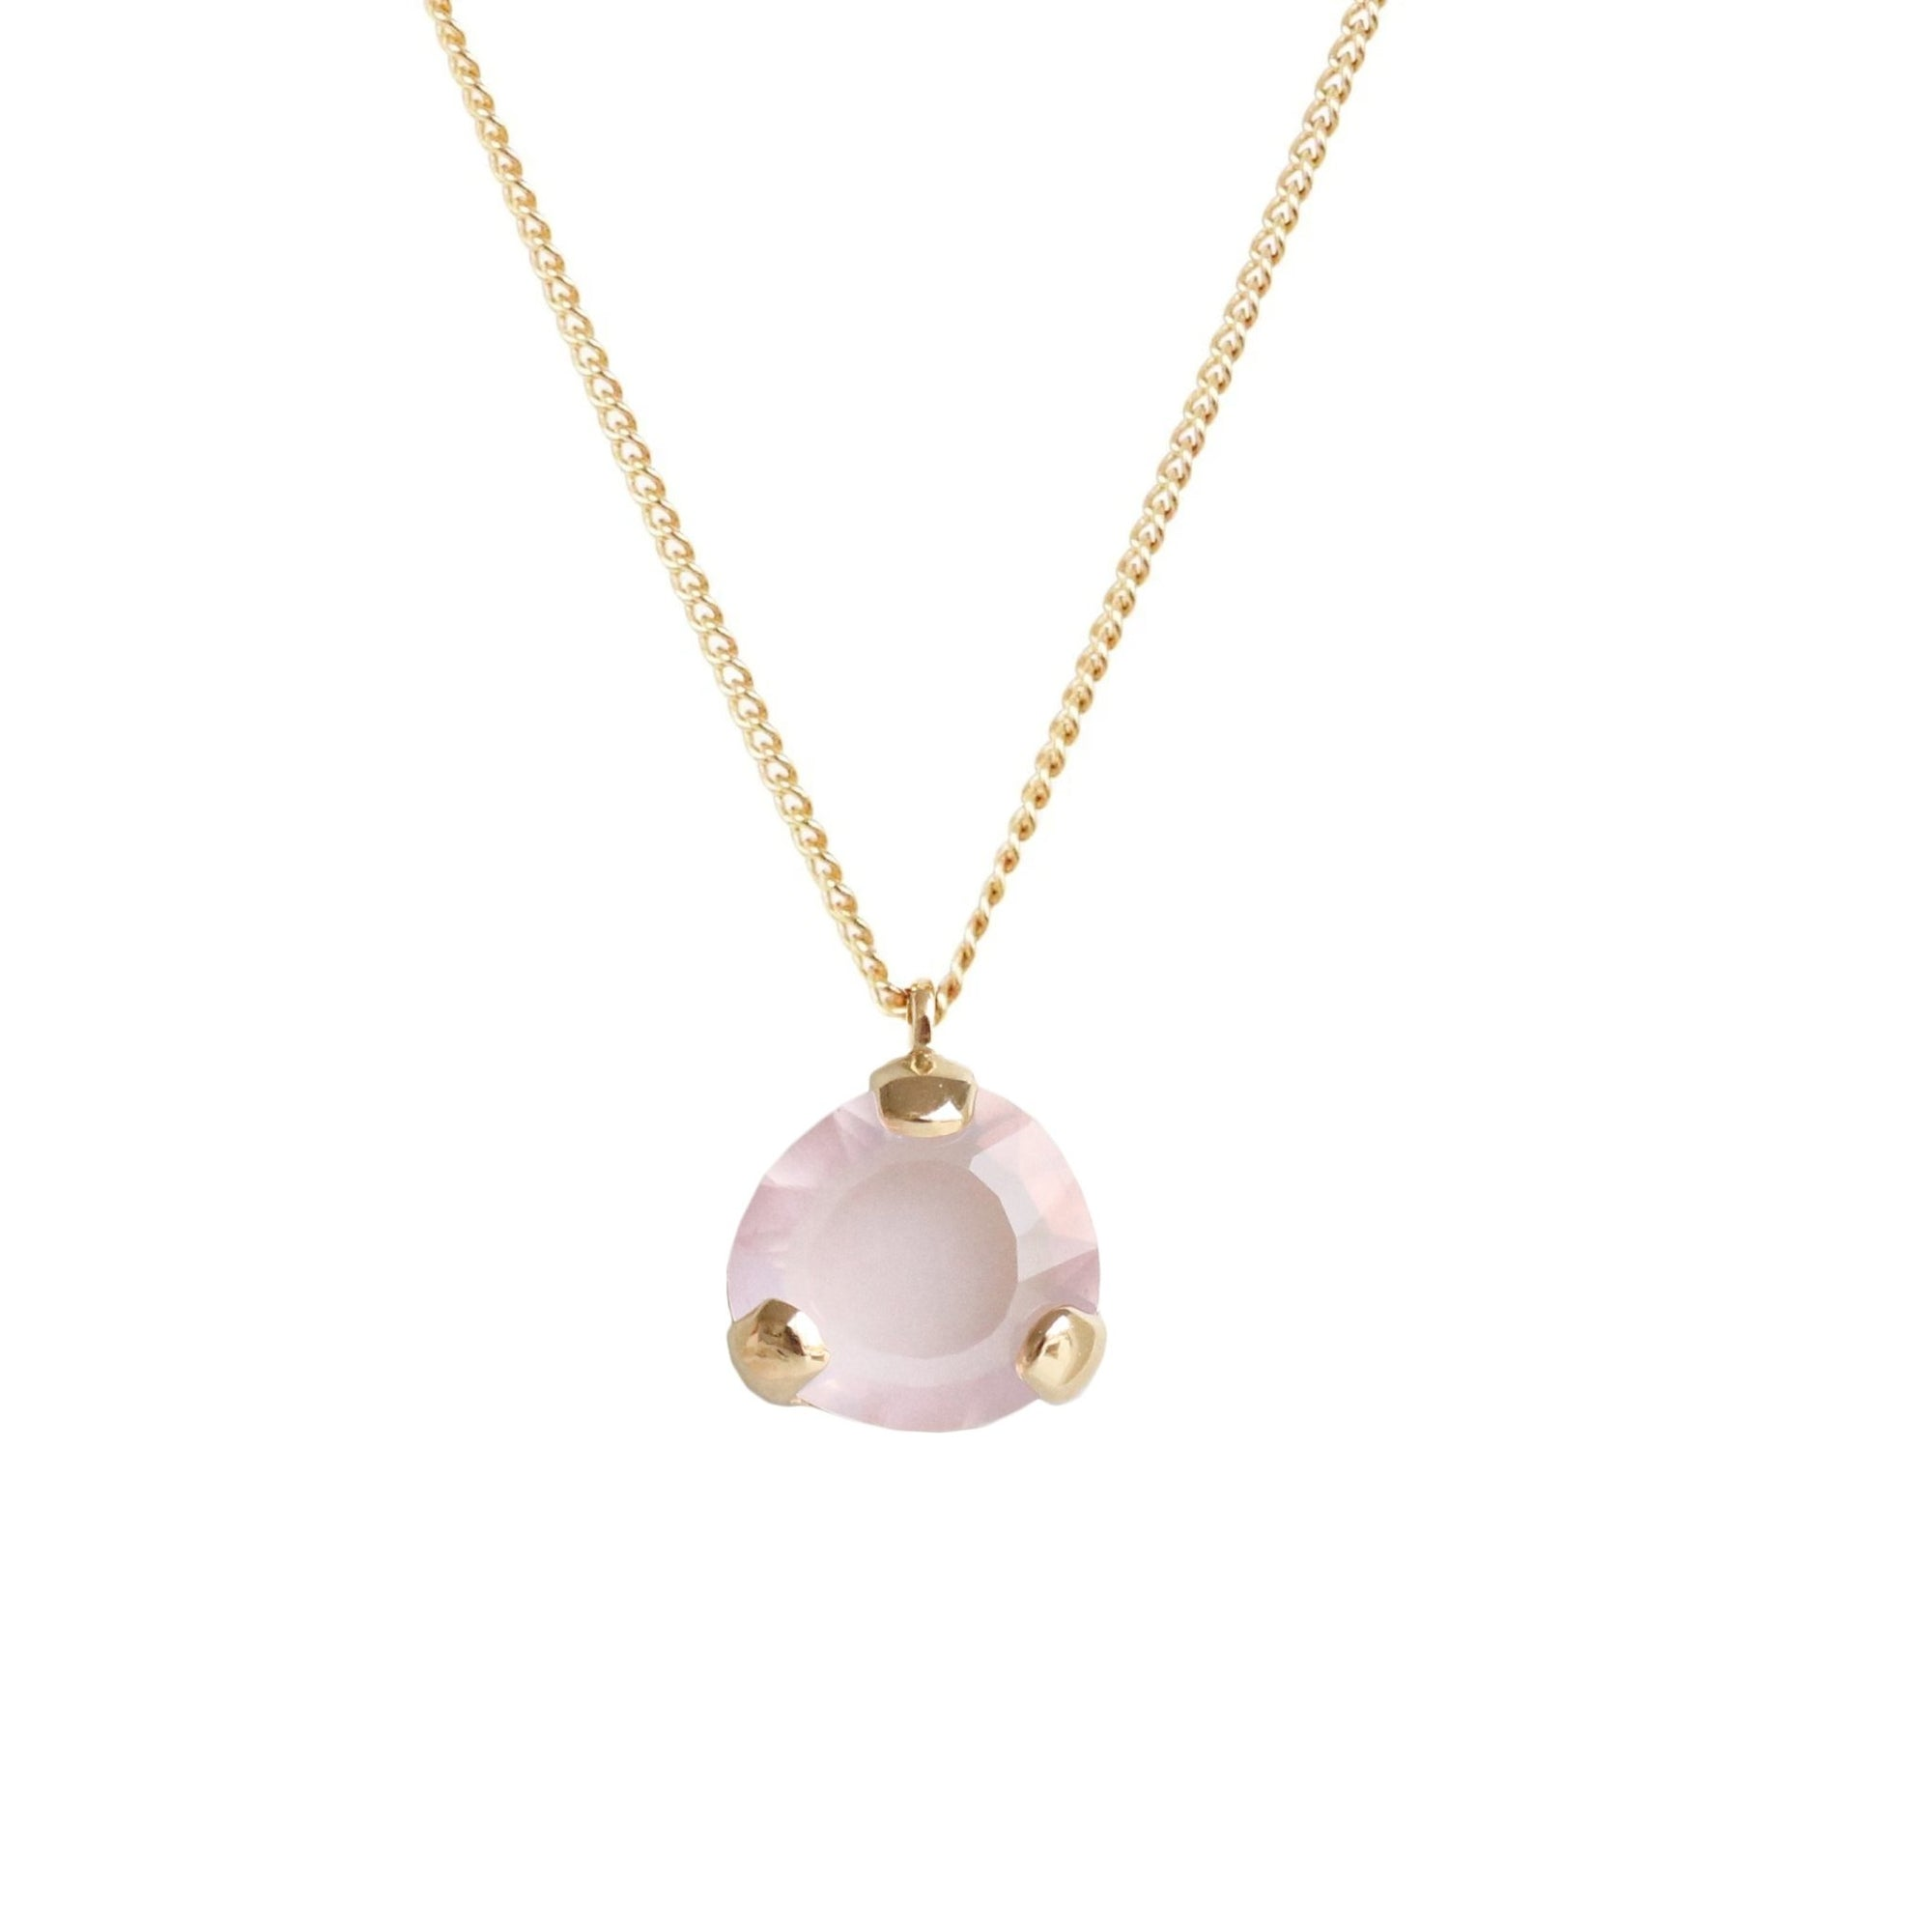 Fearless Mini Pendant Necklace - Pink Quartz & Gold - SO PRETTY CARA COTTER